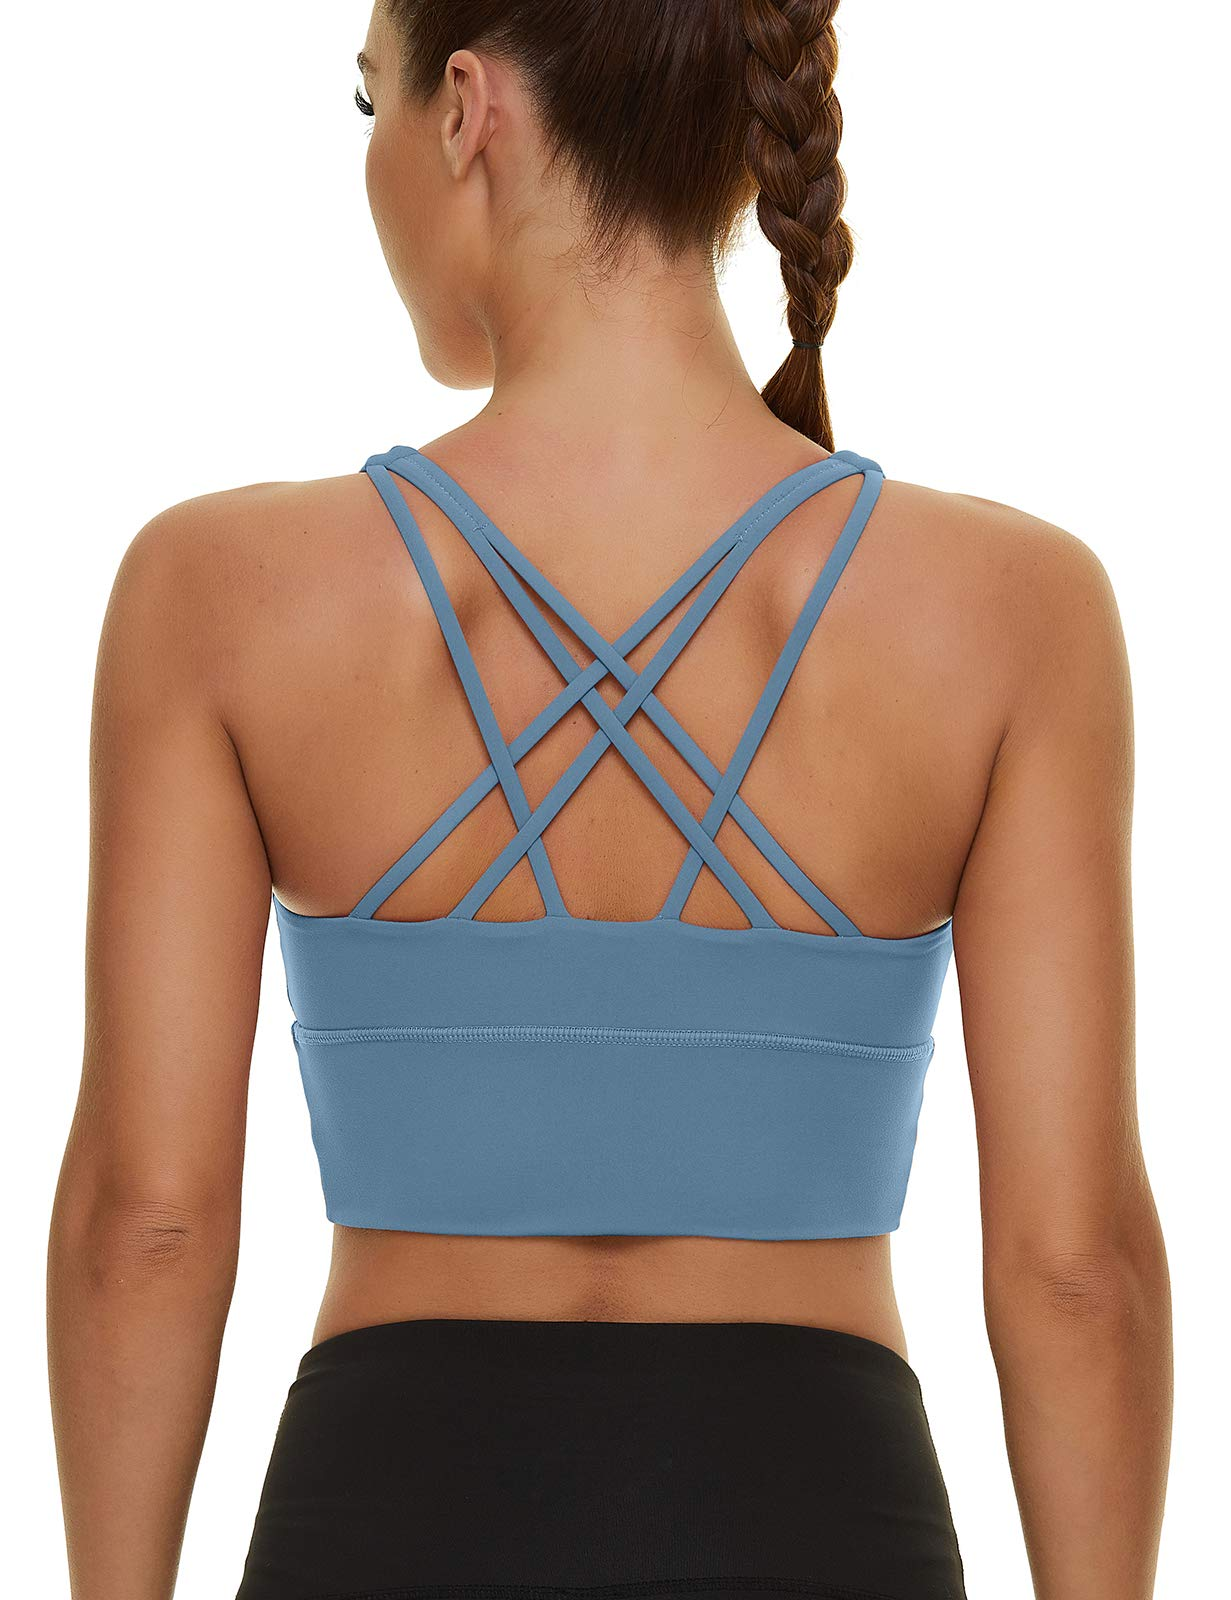 Womens Padded Longline Sports Bra Crop Tank Tops Strappy Workout Camisole Bras Support Yoga Top Gym Fitness Running Shirts